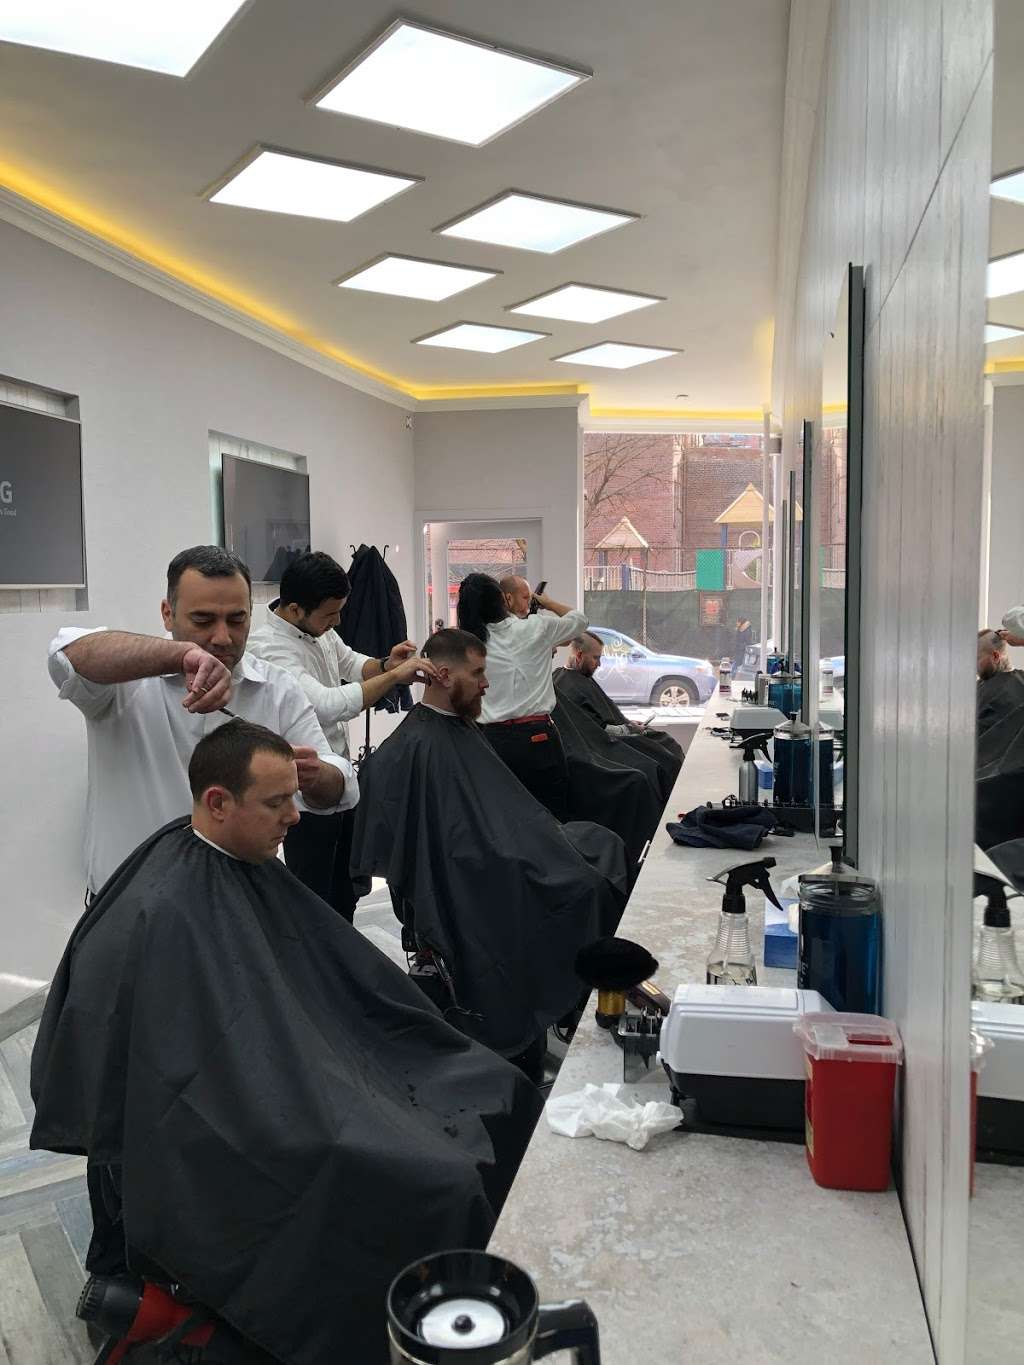 West Village Barber Shop - hair care  | Photo 6 of 6 | Address: 131 Christopher St, New York, NY 10014, USA | Phone: (212) 243-3686